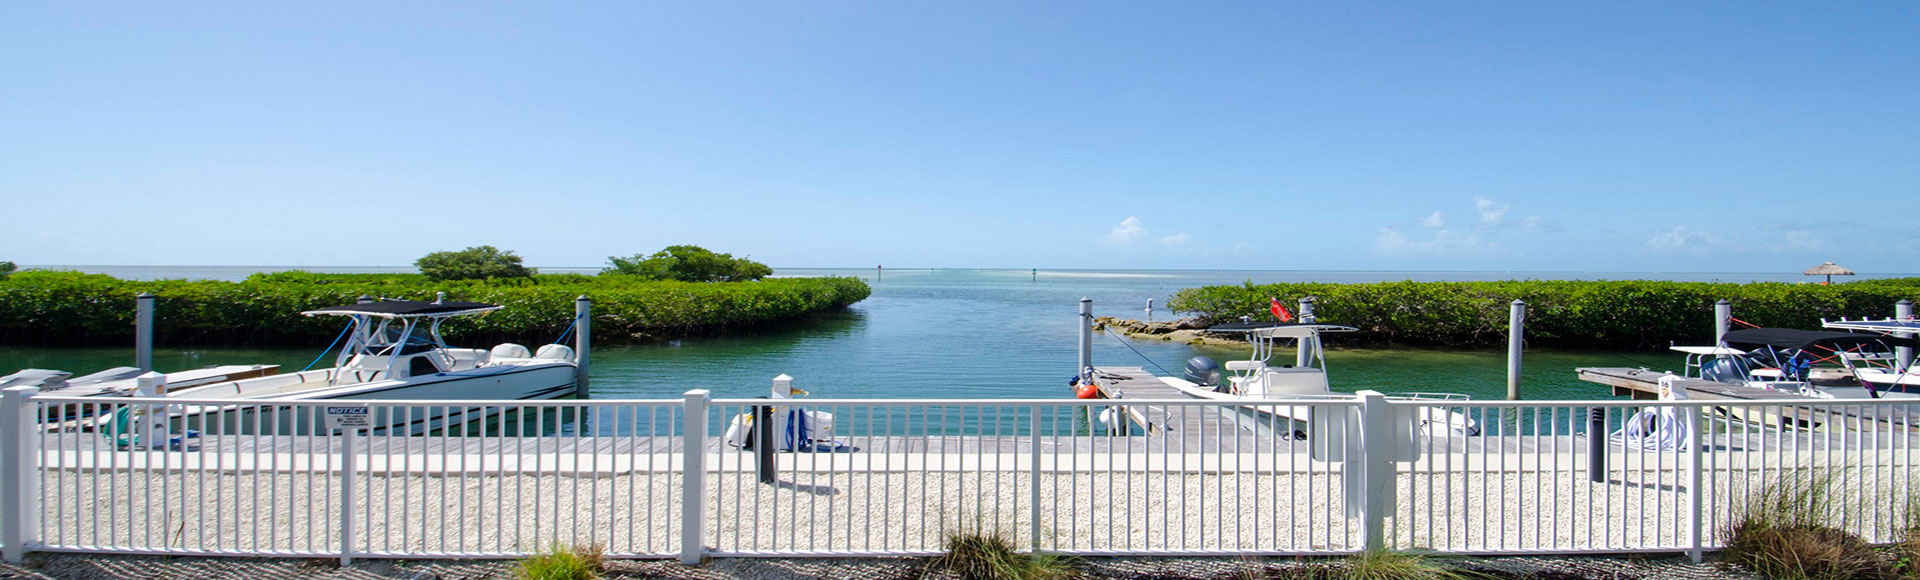 Florida keys events this weekend